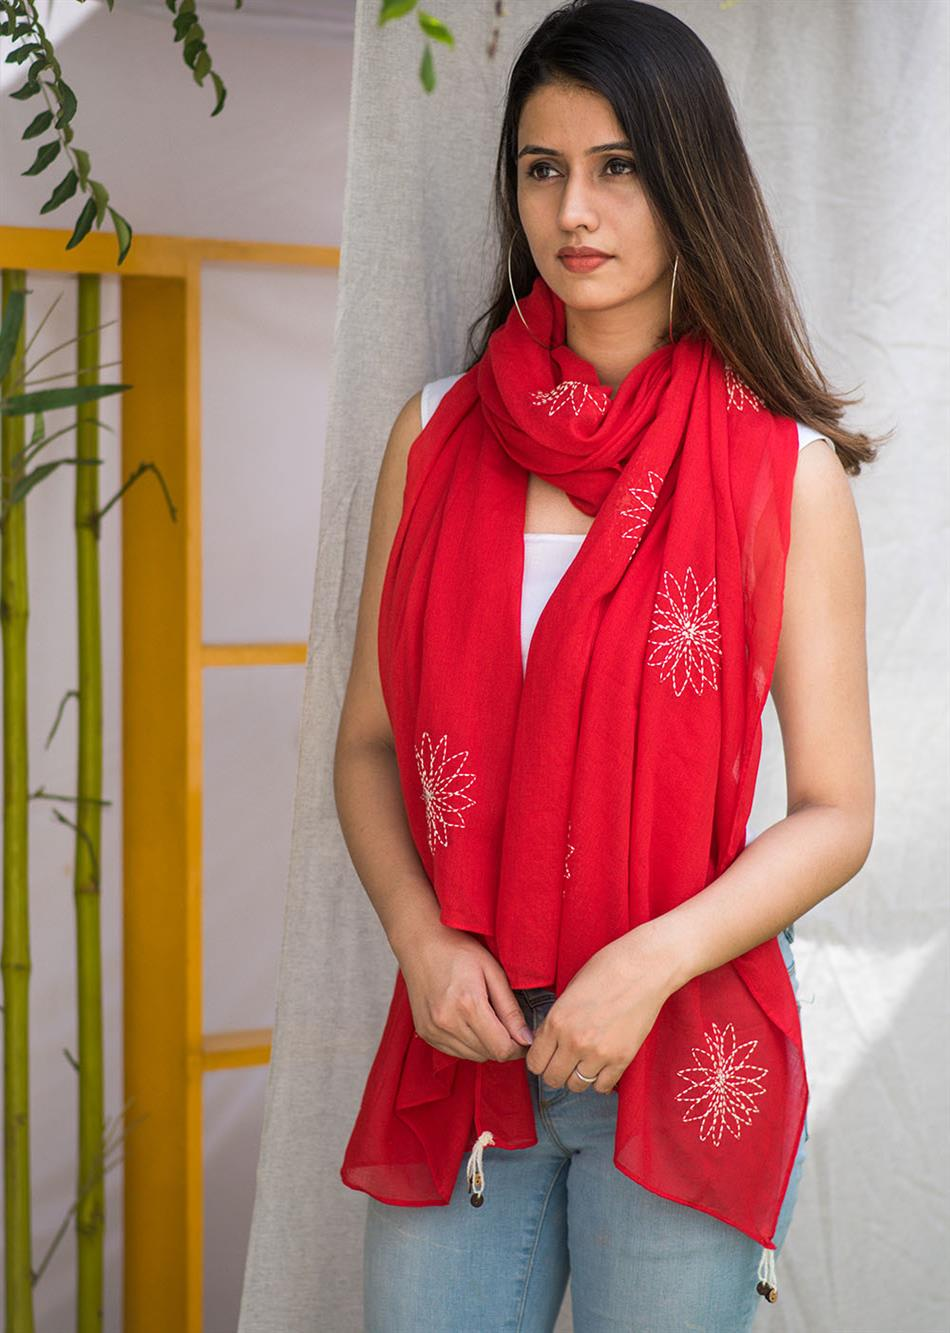 Balletic mood - Red (Hand embroidered scarf) By Jovi Fashion